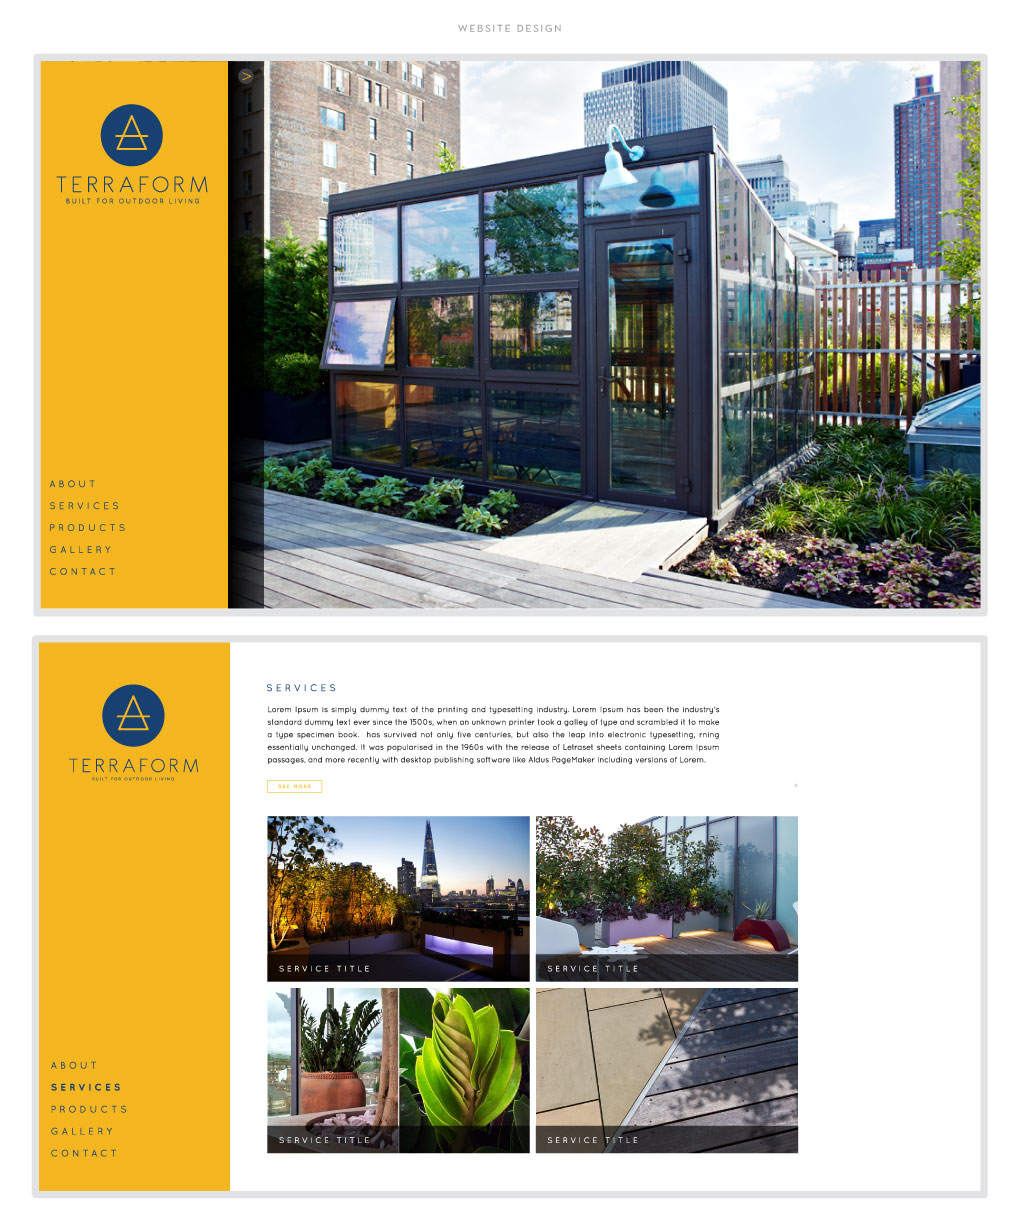 Terraform web design by M studio